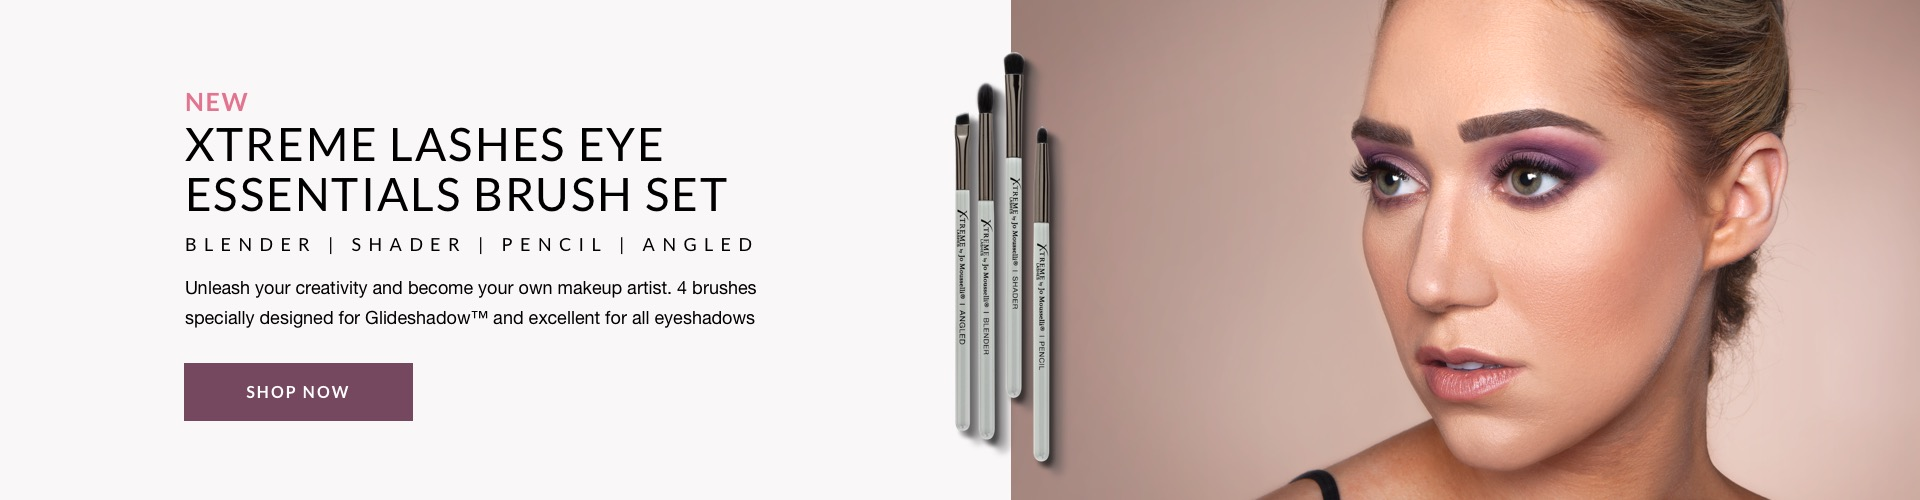 New Xtreme Lashes Eye Essentials Brush Set. Unleash your creativity and become your own makeup artist. 4 brushes specially designed for Glideshadow and excellent for all eyeshadows.